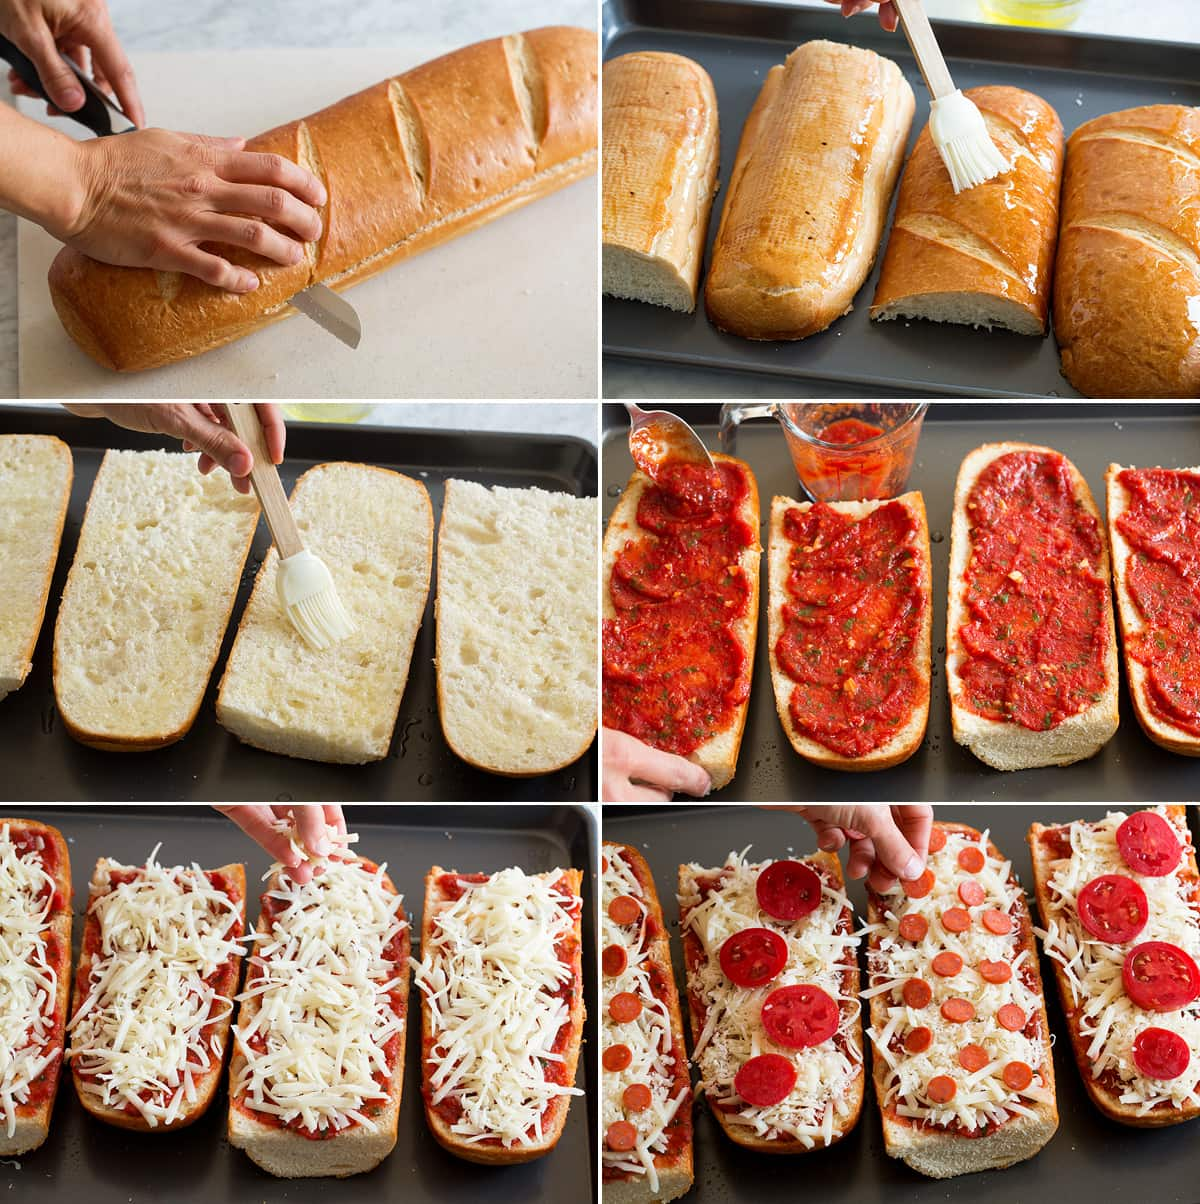 Collage of six images showing steps to make french bread pizzas. Shows slicing french bread in half, brushing top and bottom with olive oil. Covering with pizza sauce. Topping with cheese and toppings.